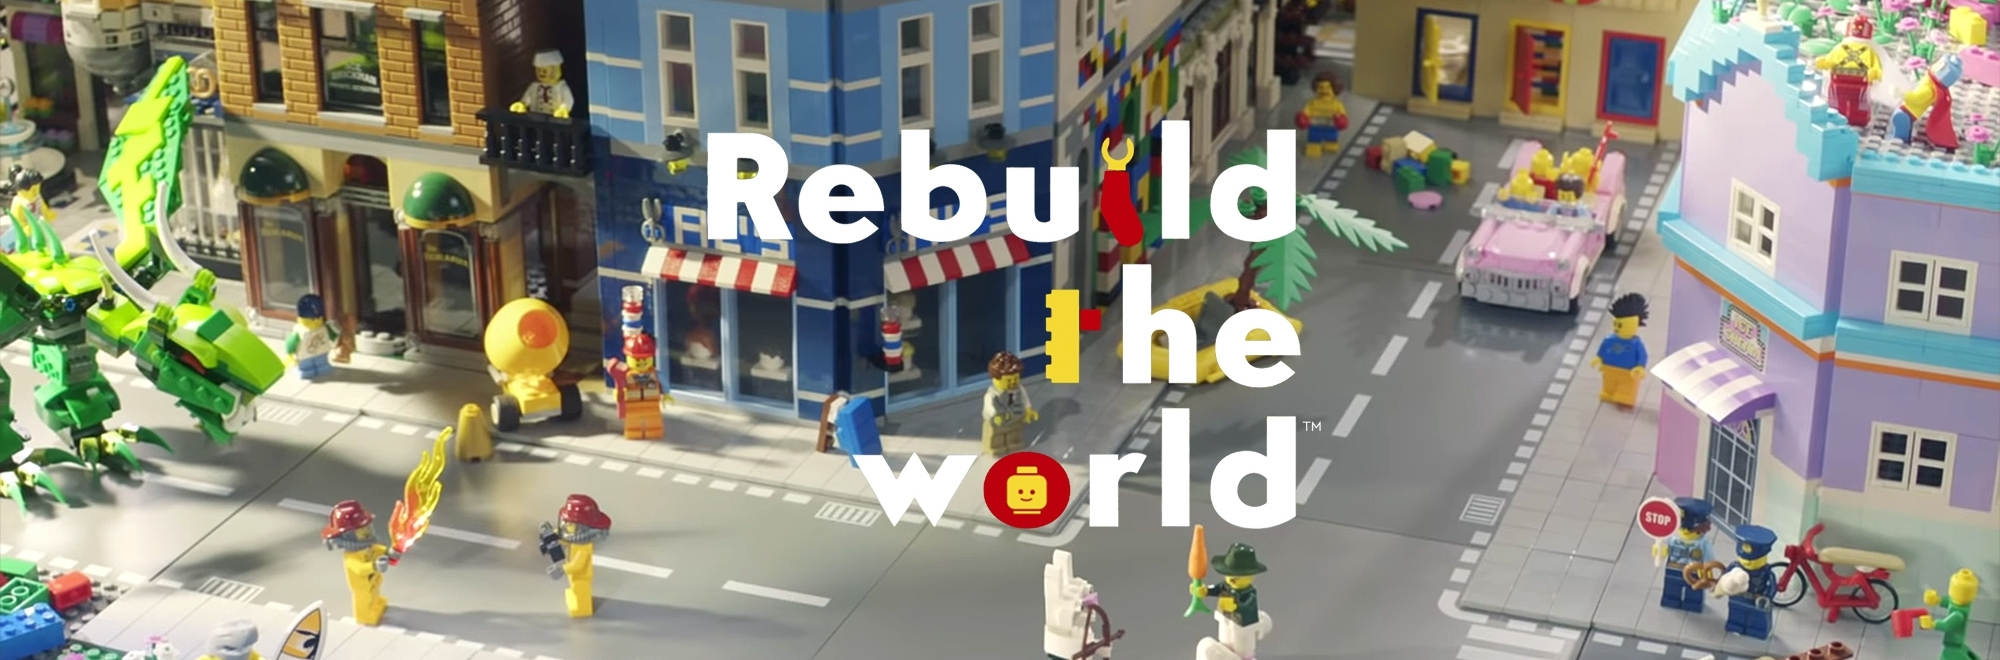 Lego says 'Rebuild the World' without destroying it